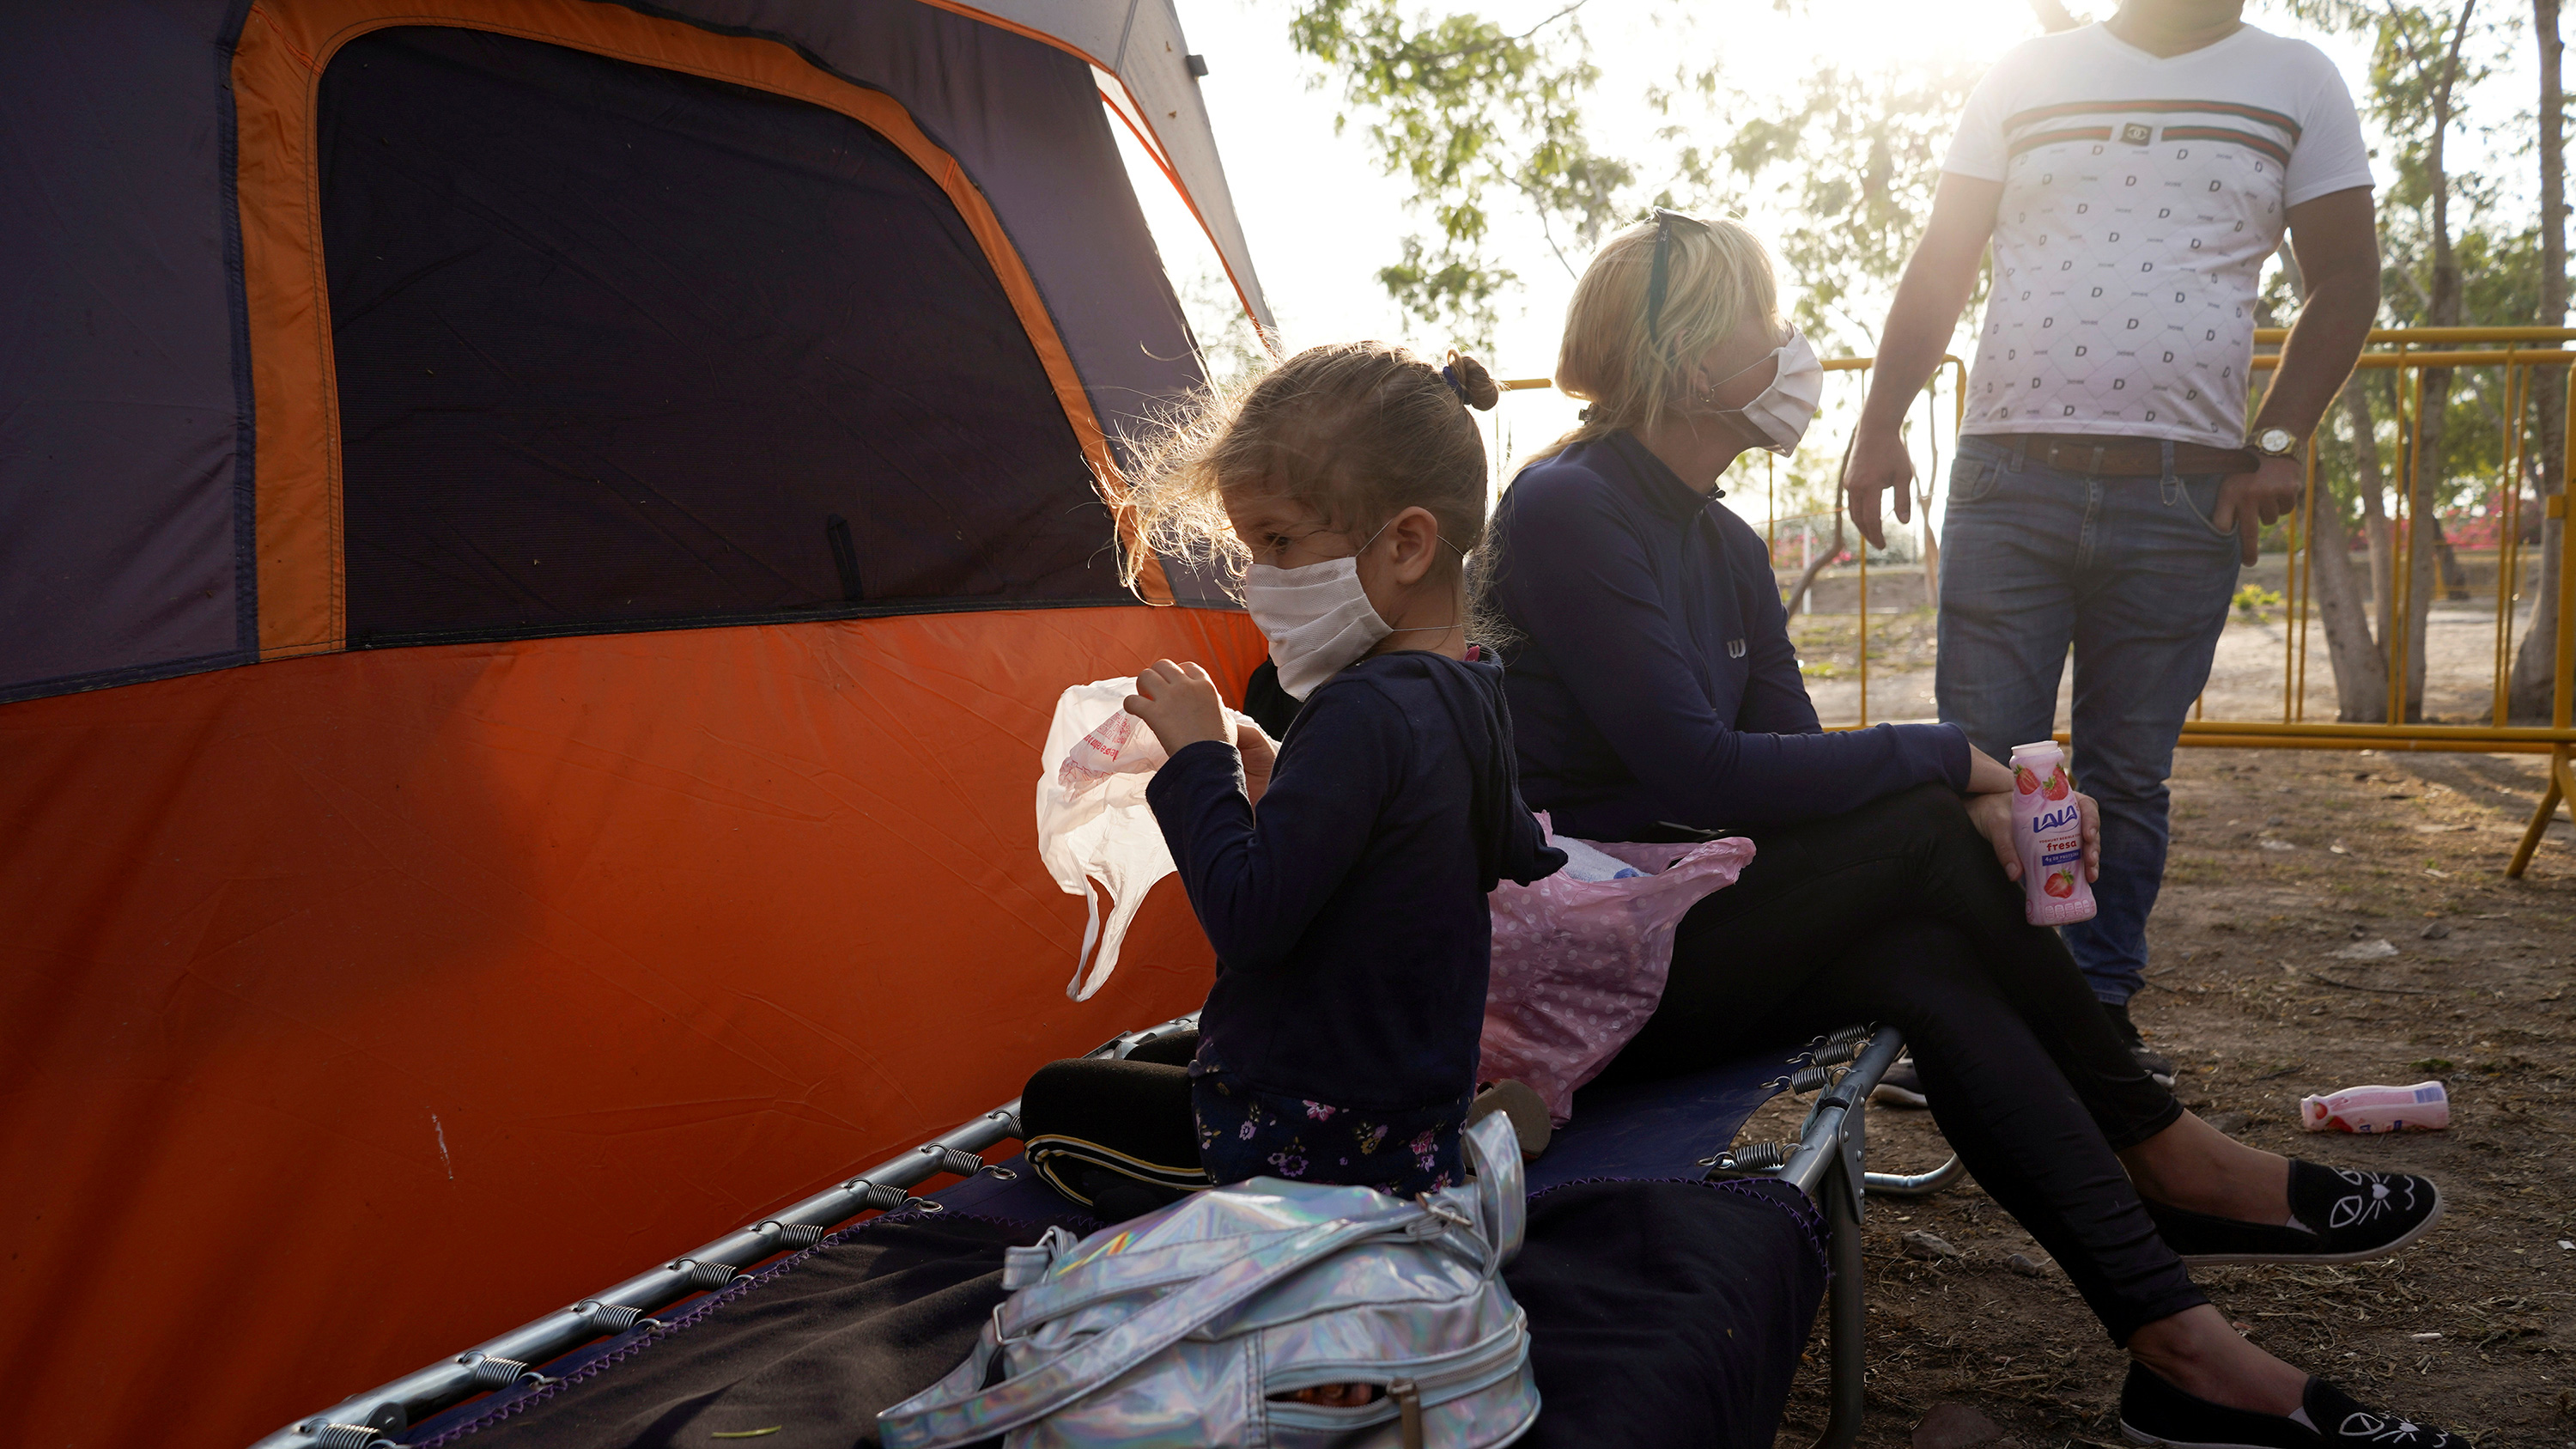 The photo shows the mother and daughter outside a tent in the morning hours with the rising sun brightly illuminating the top of the frame. Mother holds a strawberry drink and talks to a man whose head is out of the frame. Daughter faces the other way and plays with a plastic shopping bag.